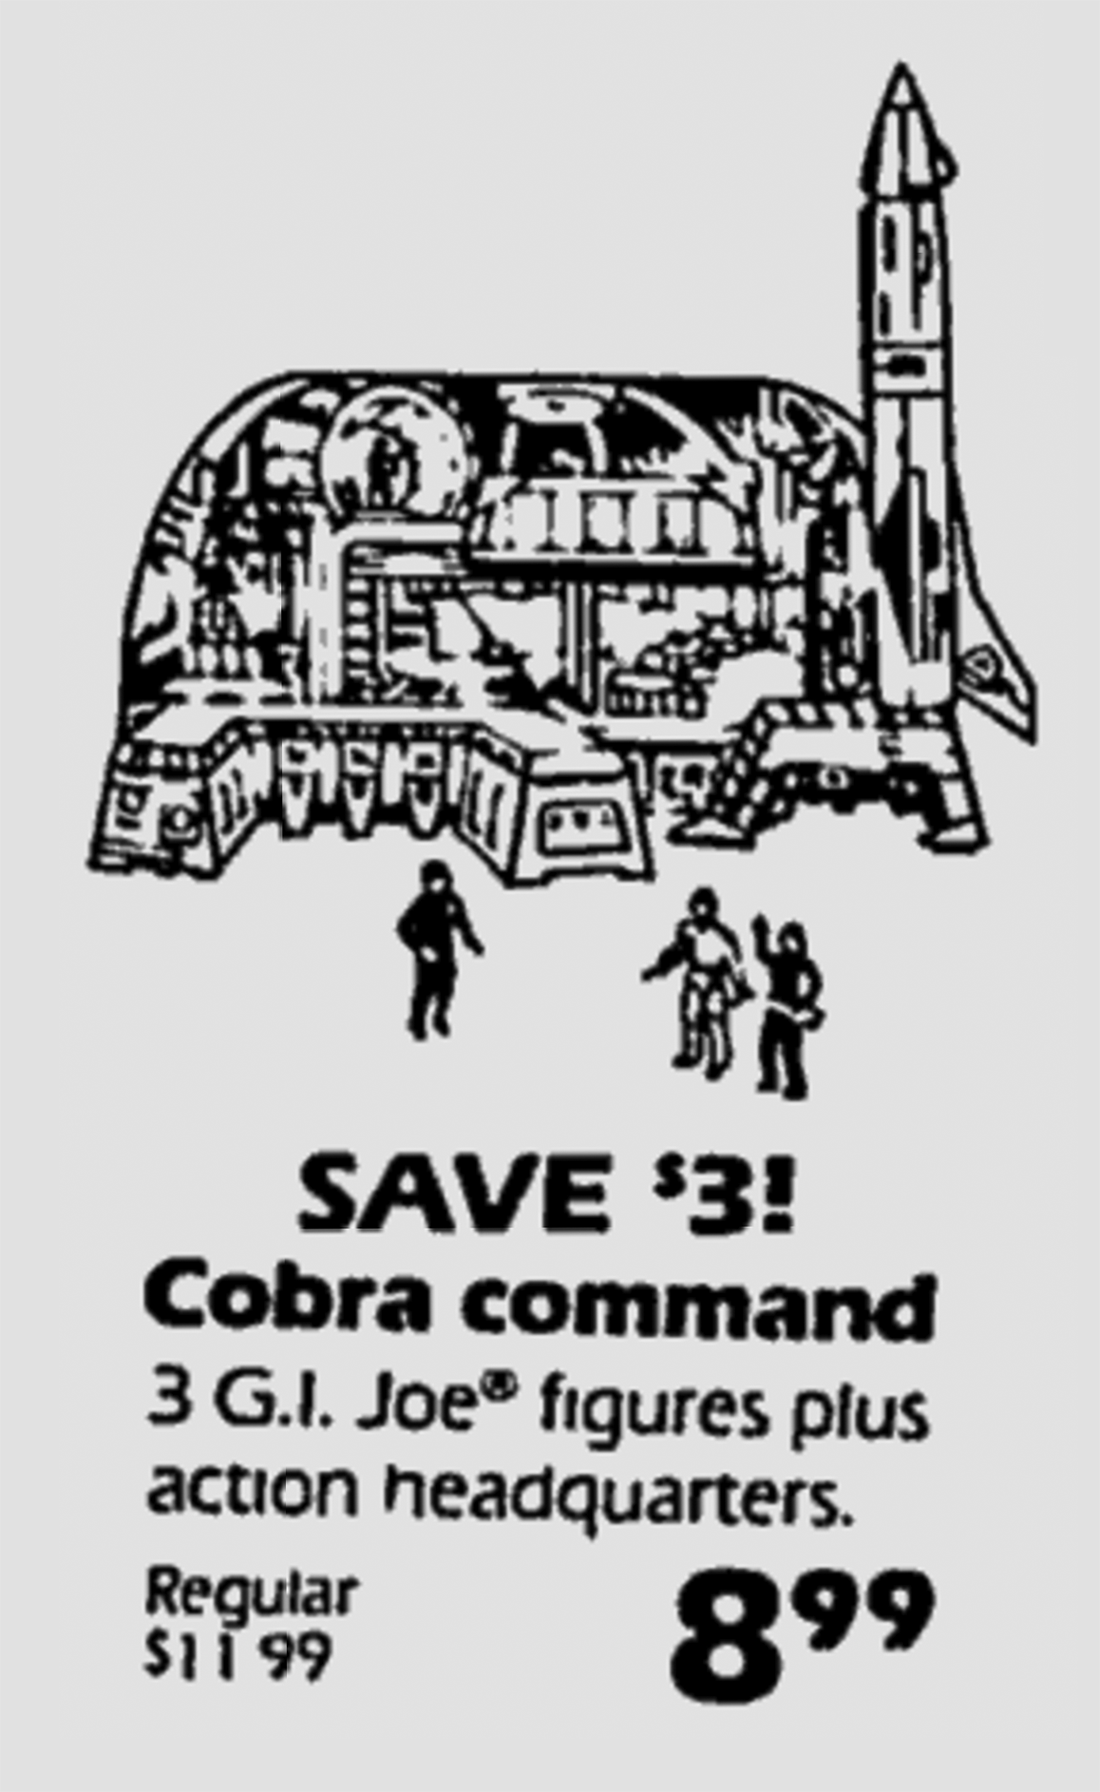 G I  Joe Missile Command Headquarters on Sale at Sears in 1982